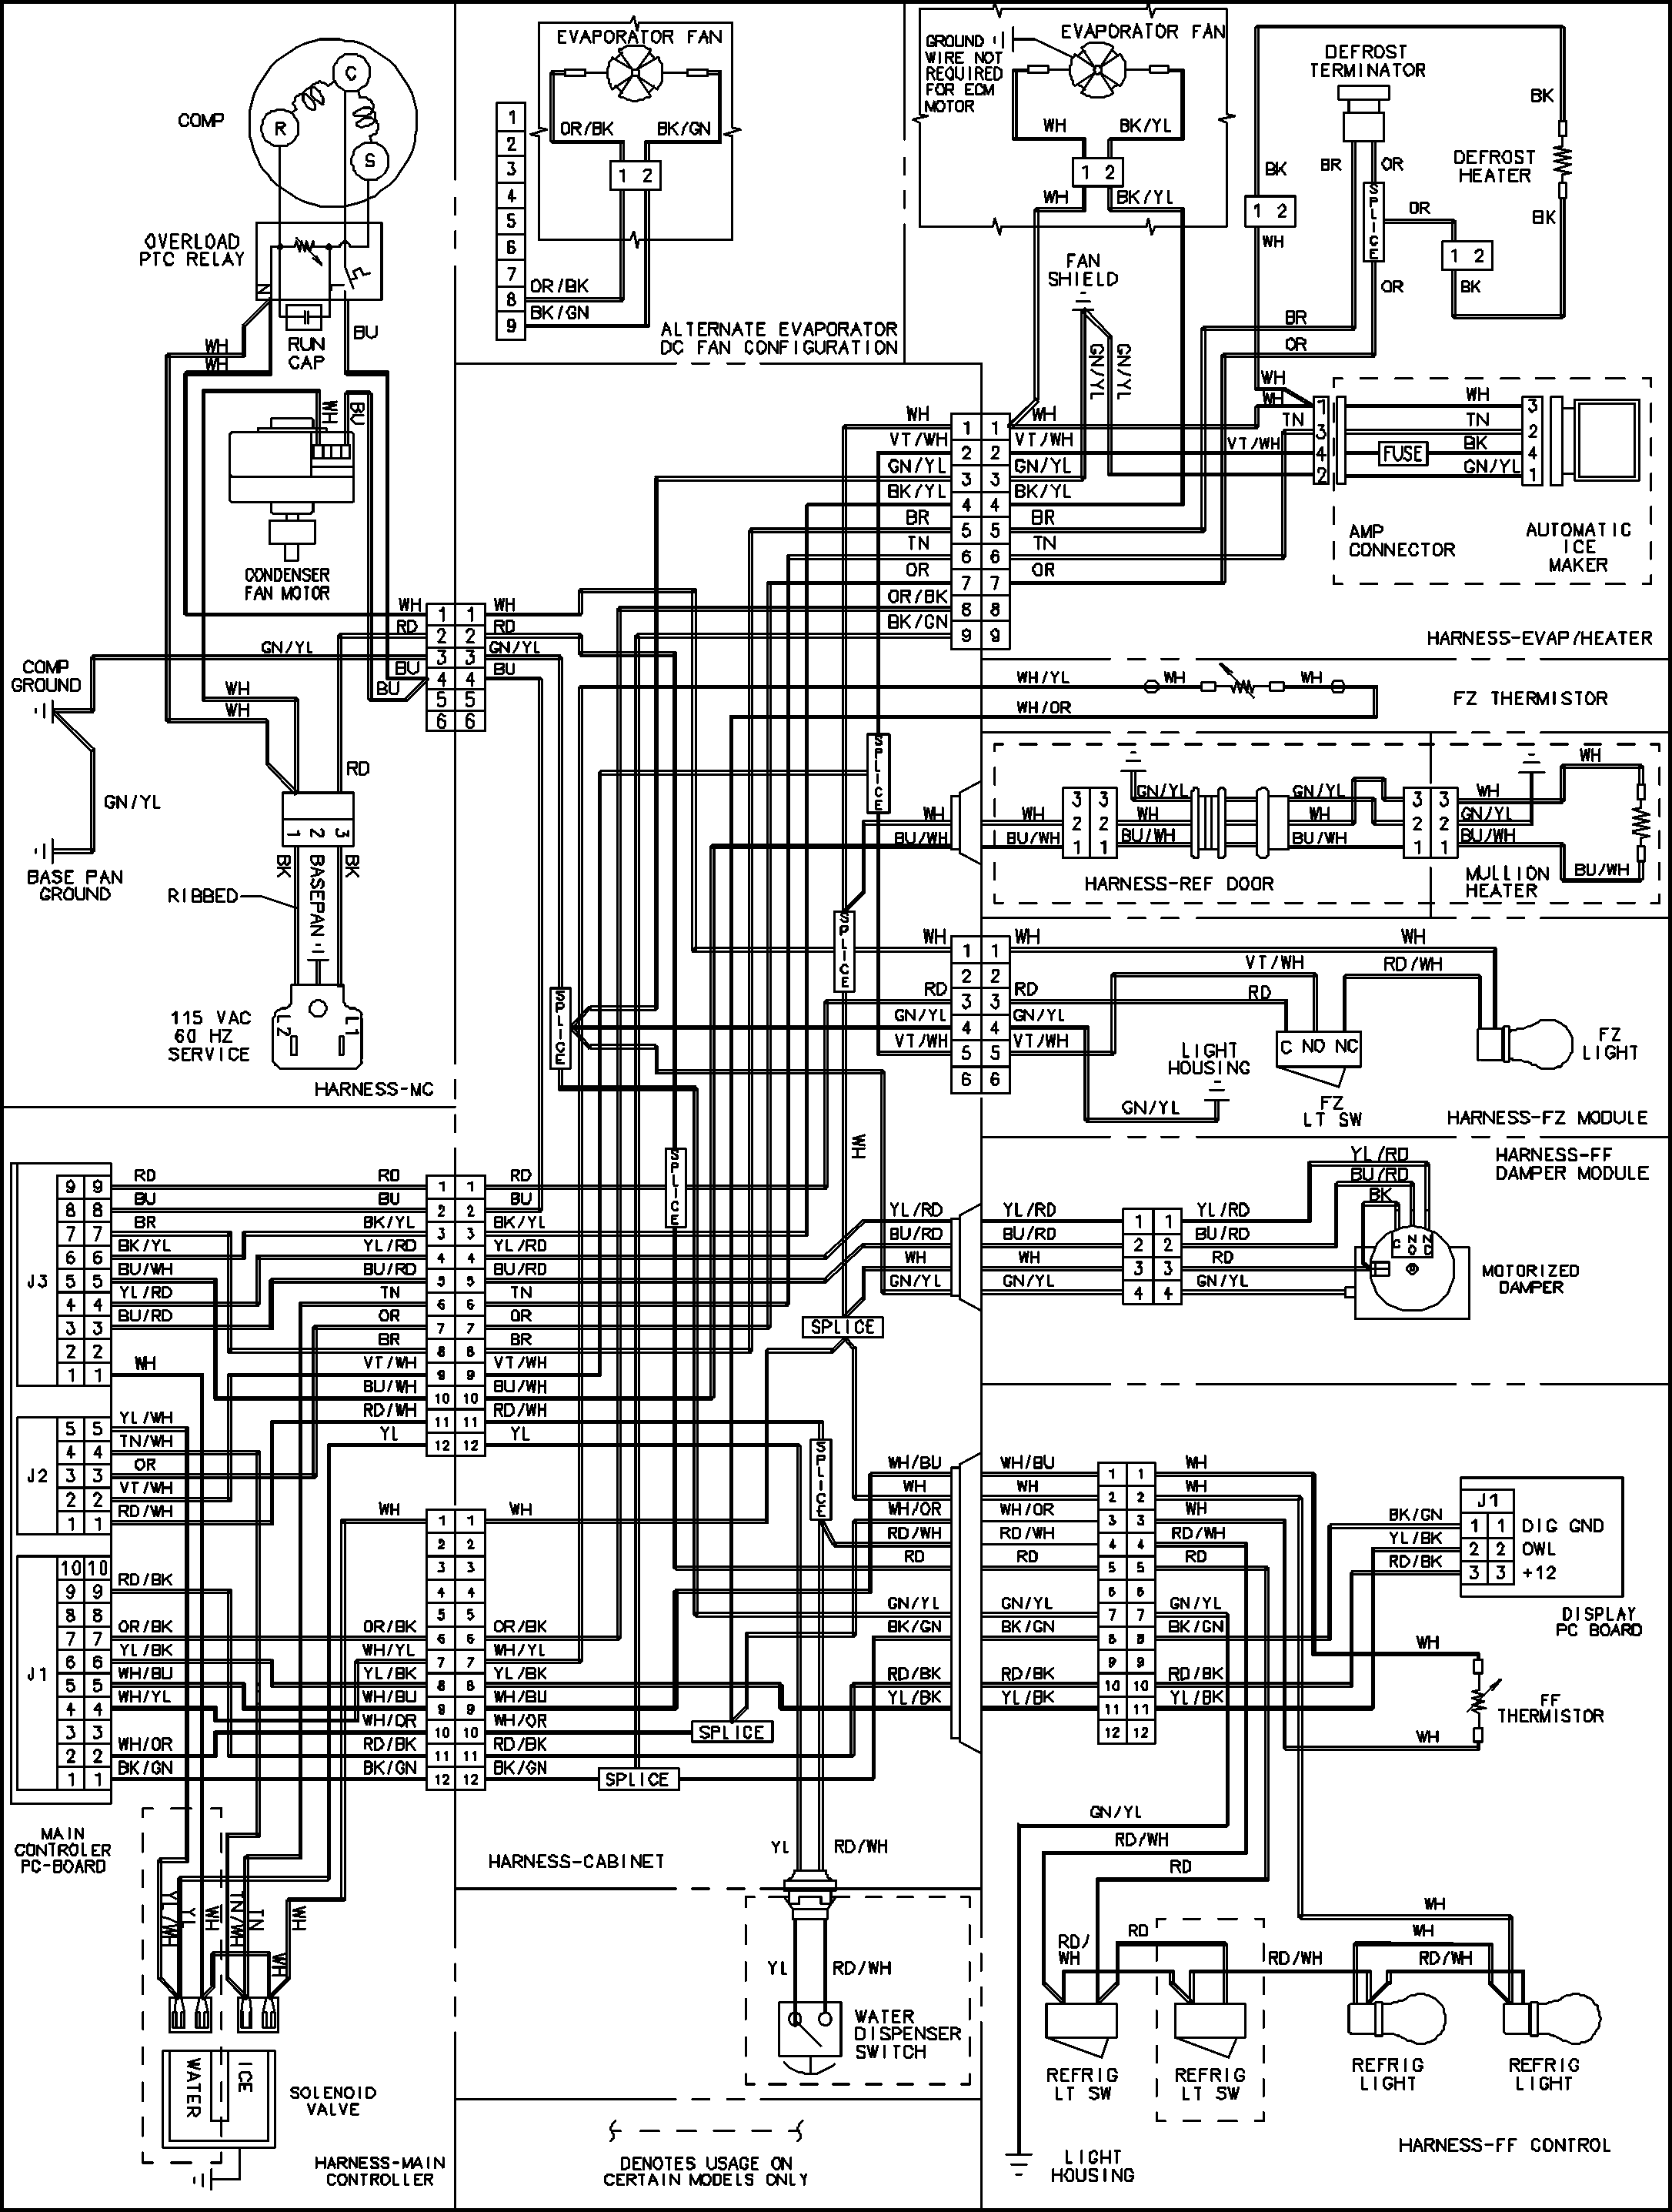 WIRING INFORMATION (SERIES 10) Diagram & Parts List for